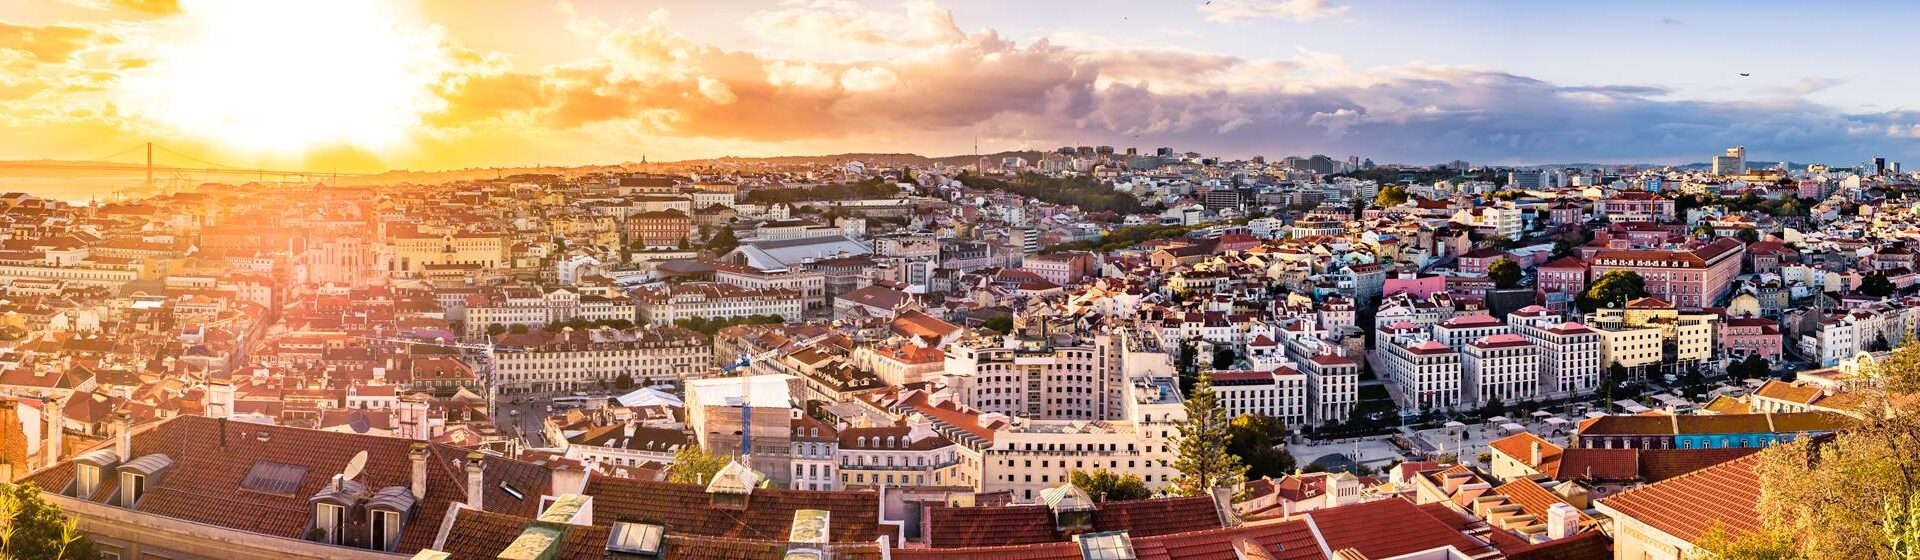 A panorama over the beautiful city of Lisbon, Portugal. The city is situated on seven hills by the water and offers spectacular views and beautiful architecture. The panorama was captured from Castelo Sao Jorge.